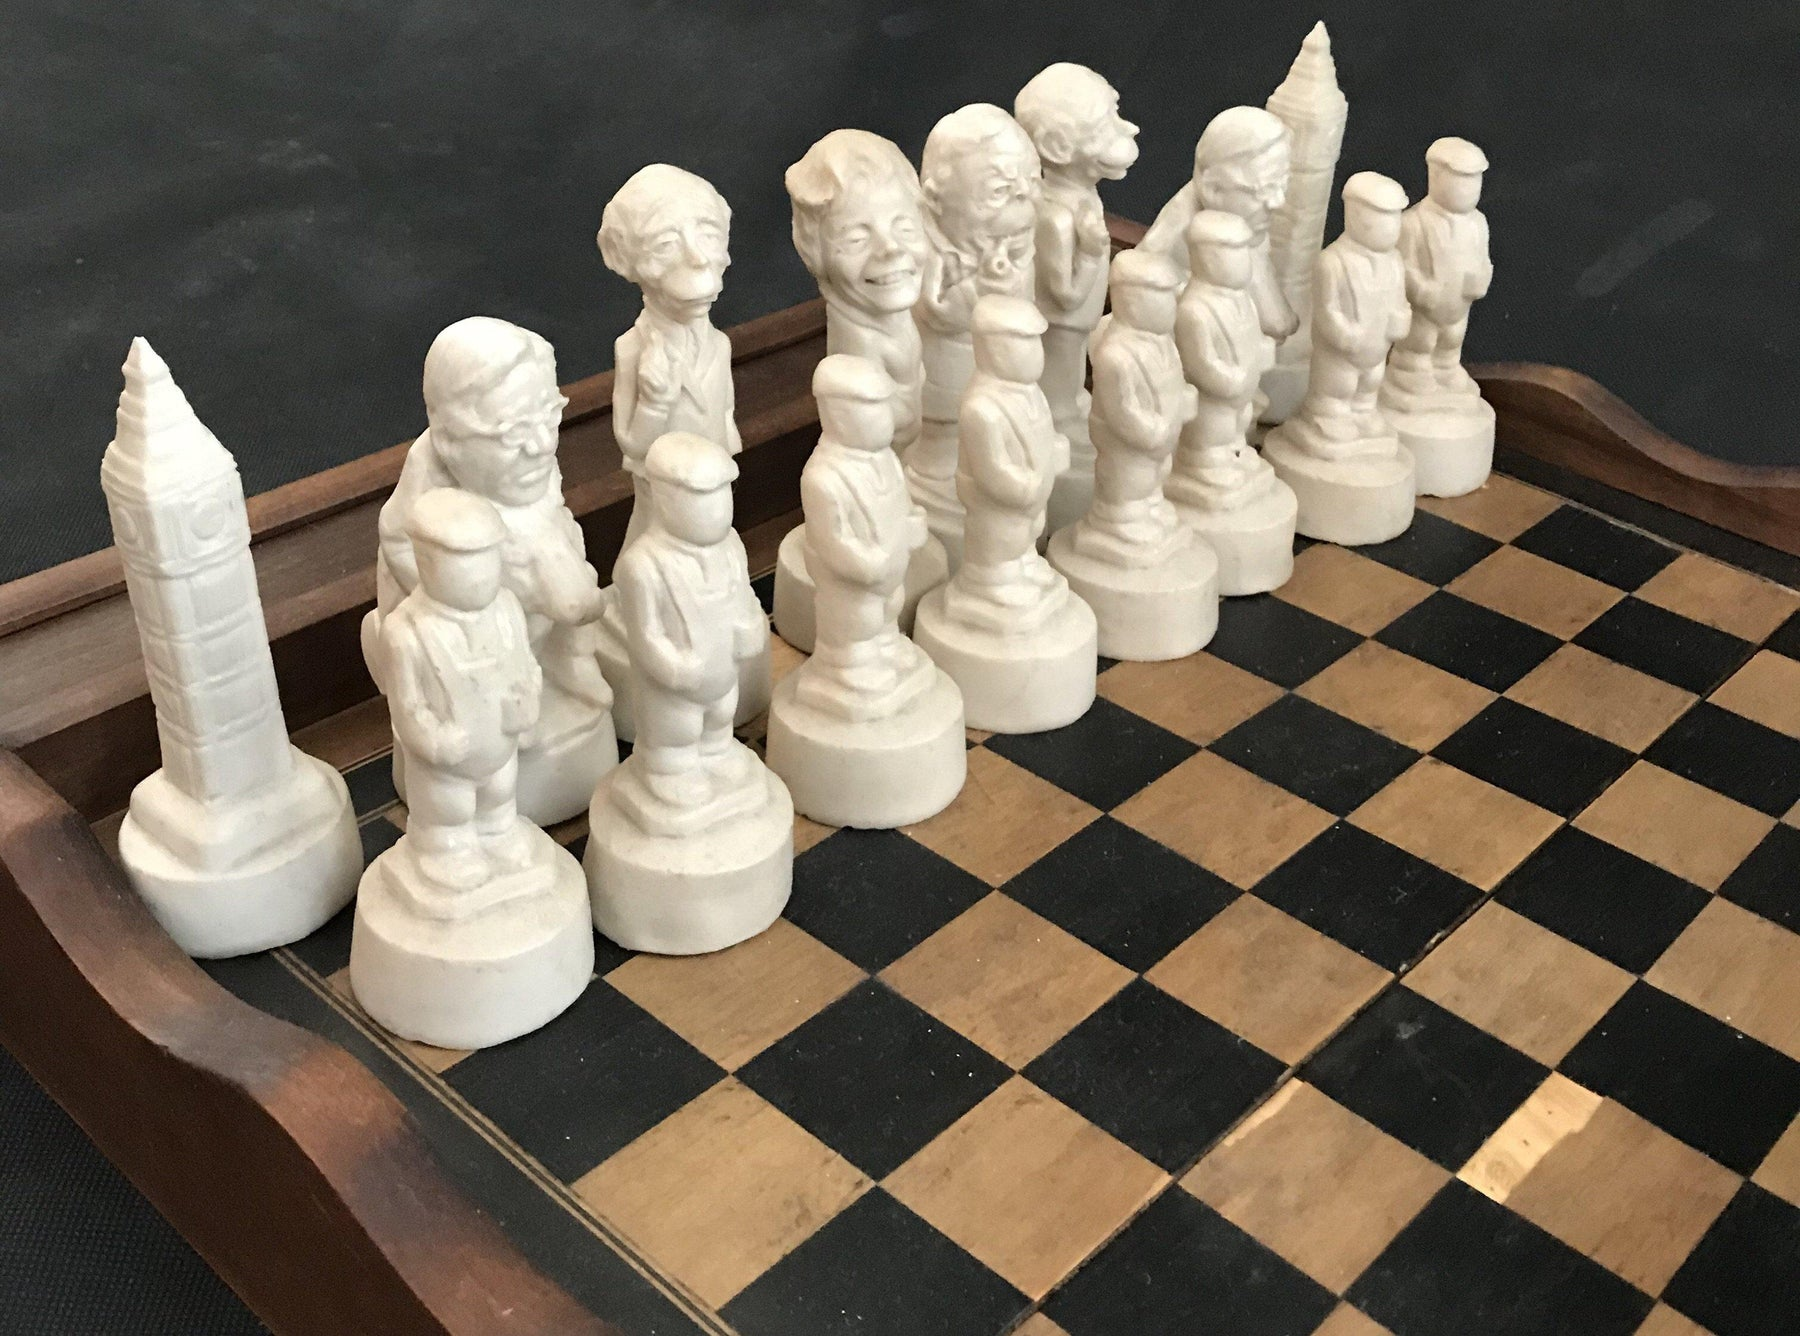 British Chess Set of Political figures including Big Ben and Margaret Thatcher for sale